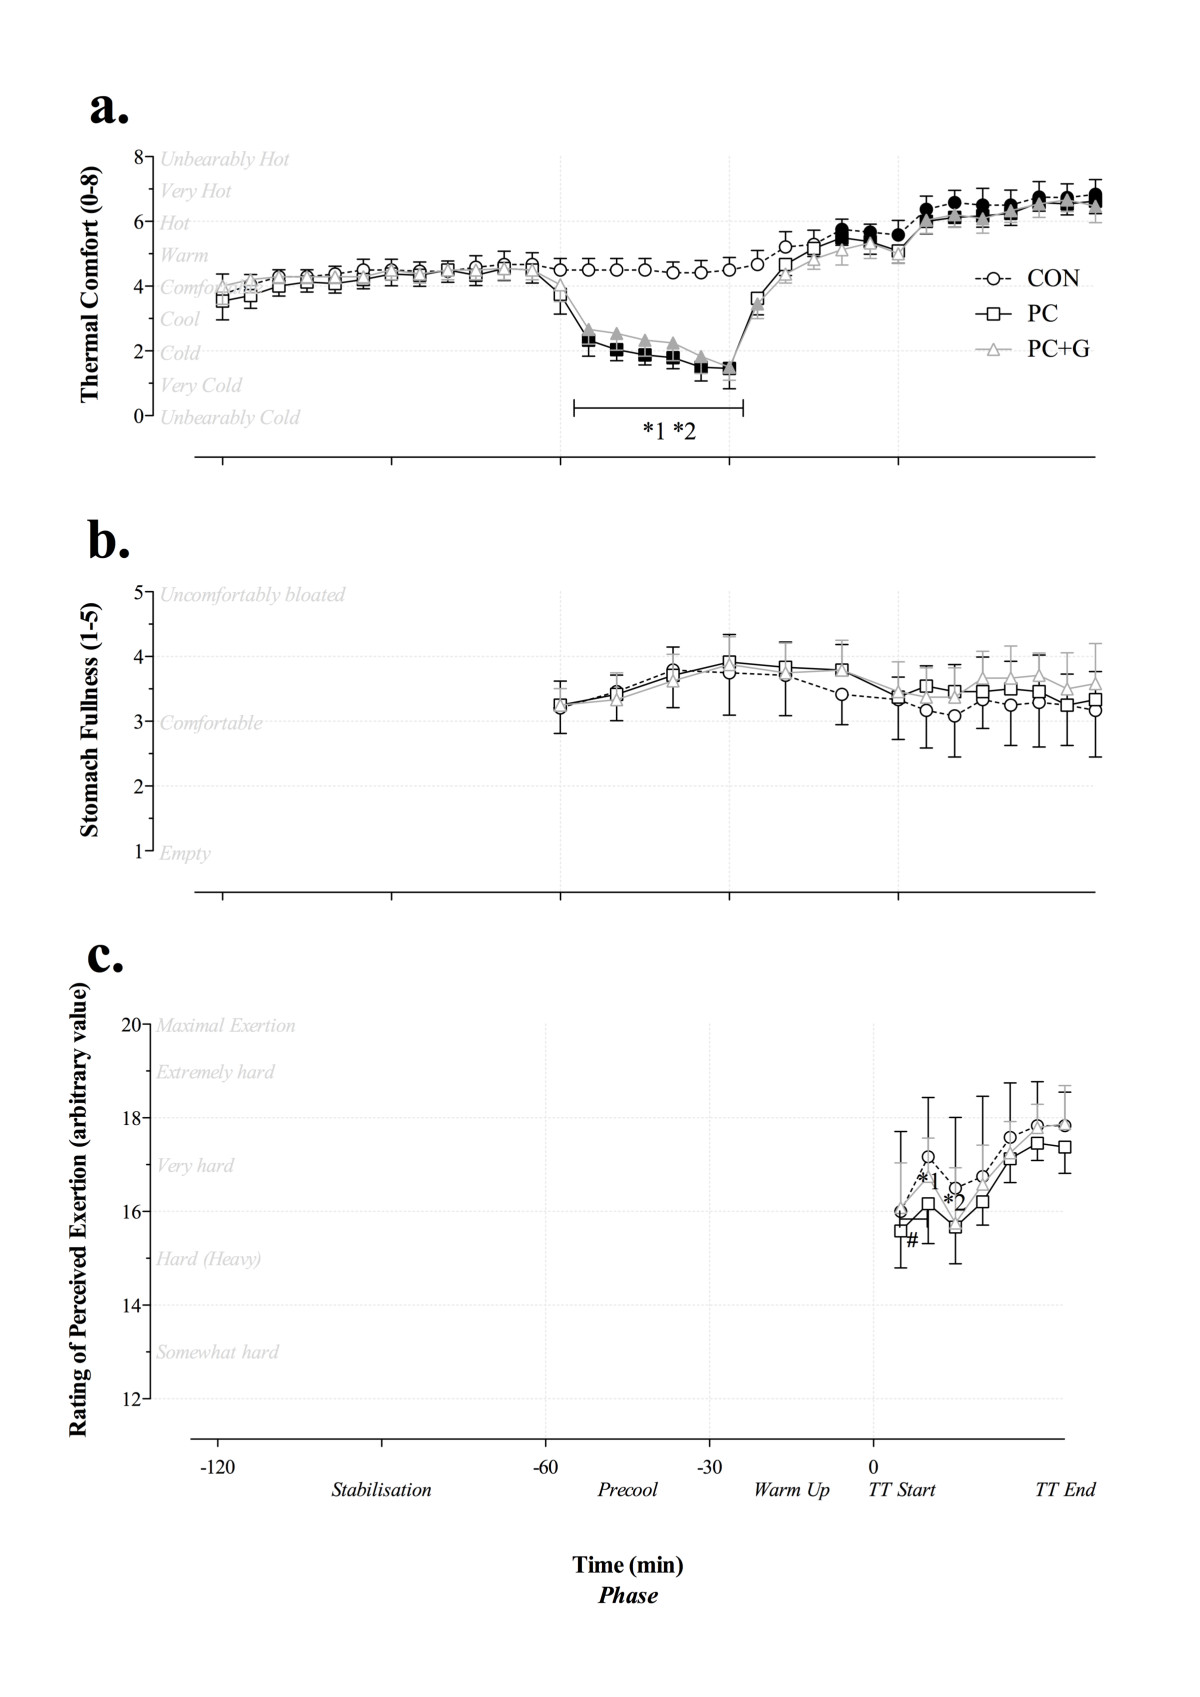 http://static-content.springer.com/image/art%3A10.1186%2F1550-2783-9-55/MediaObjects/12970_2012_Article_365_Fig3_HTML.jpg